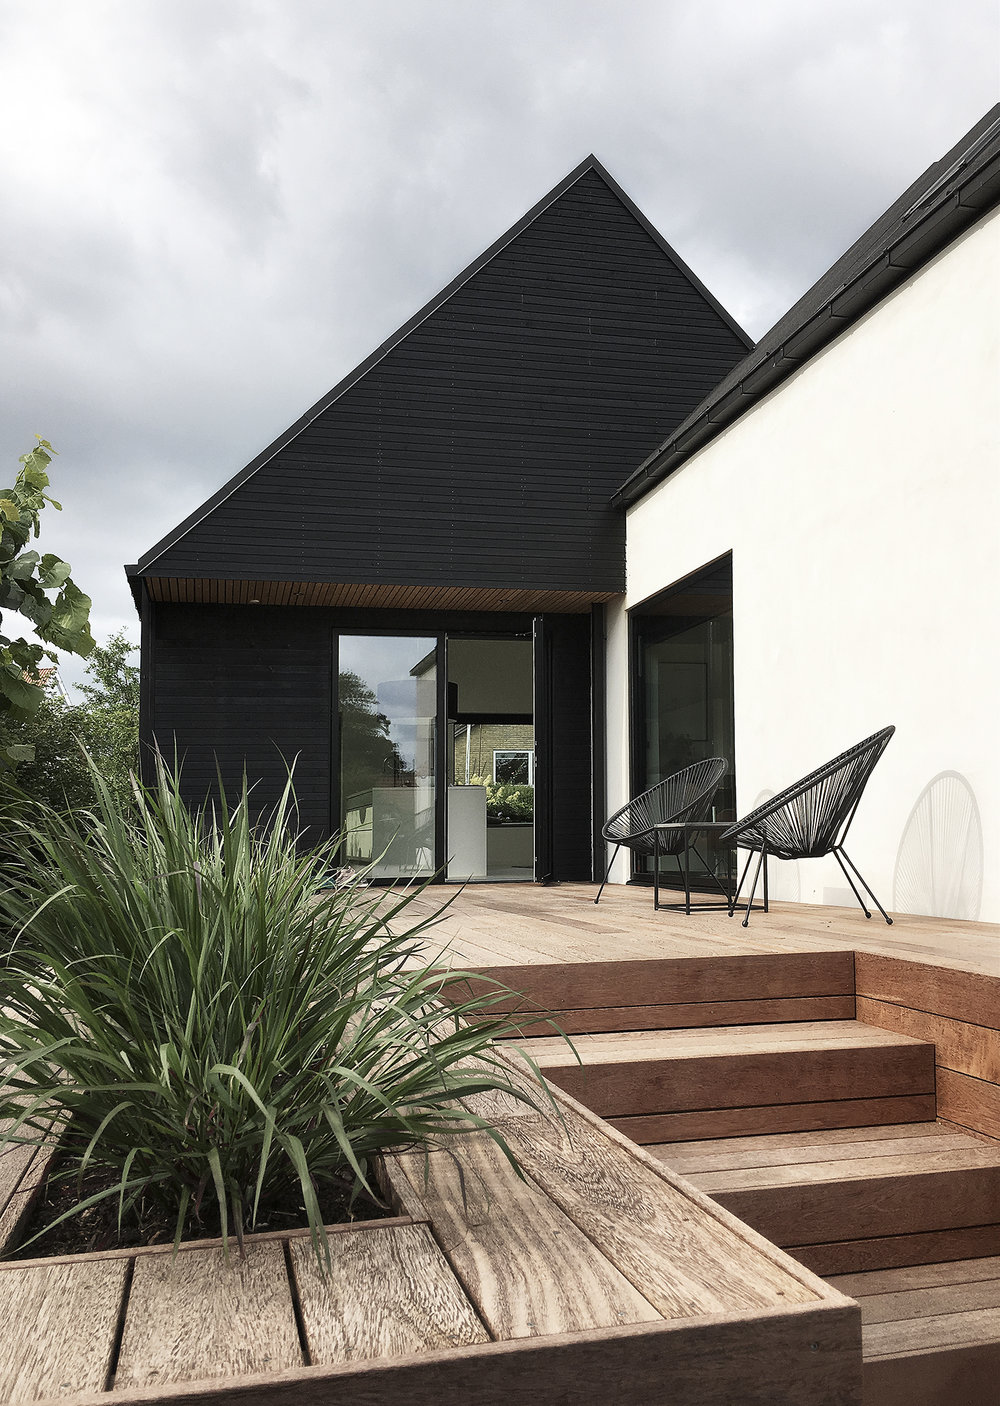 NEW EXTENSION, WOODEN TERRACE AND RENOVATION OF EXISTING HOUSE IN BRABRAND, AARHUS.